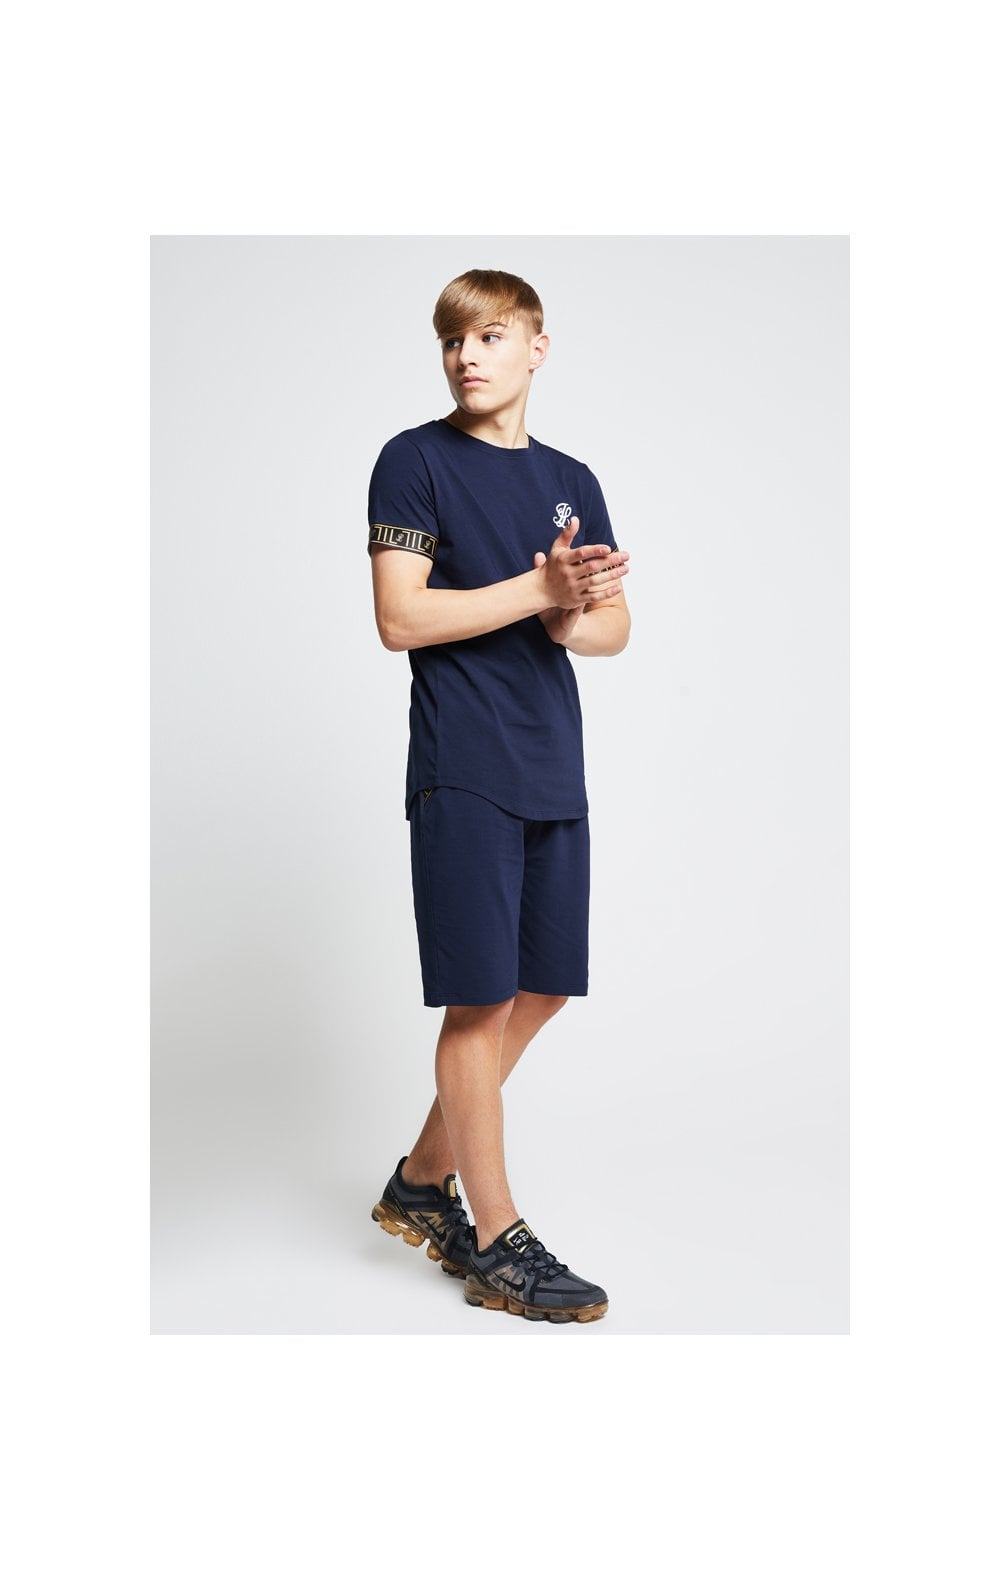 Illusive London Tape Jersey Shorts - Navy (4)